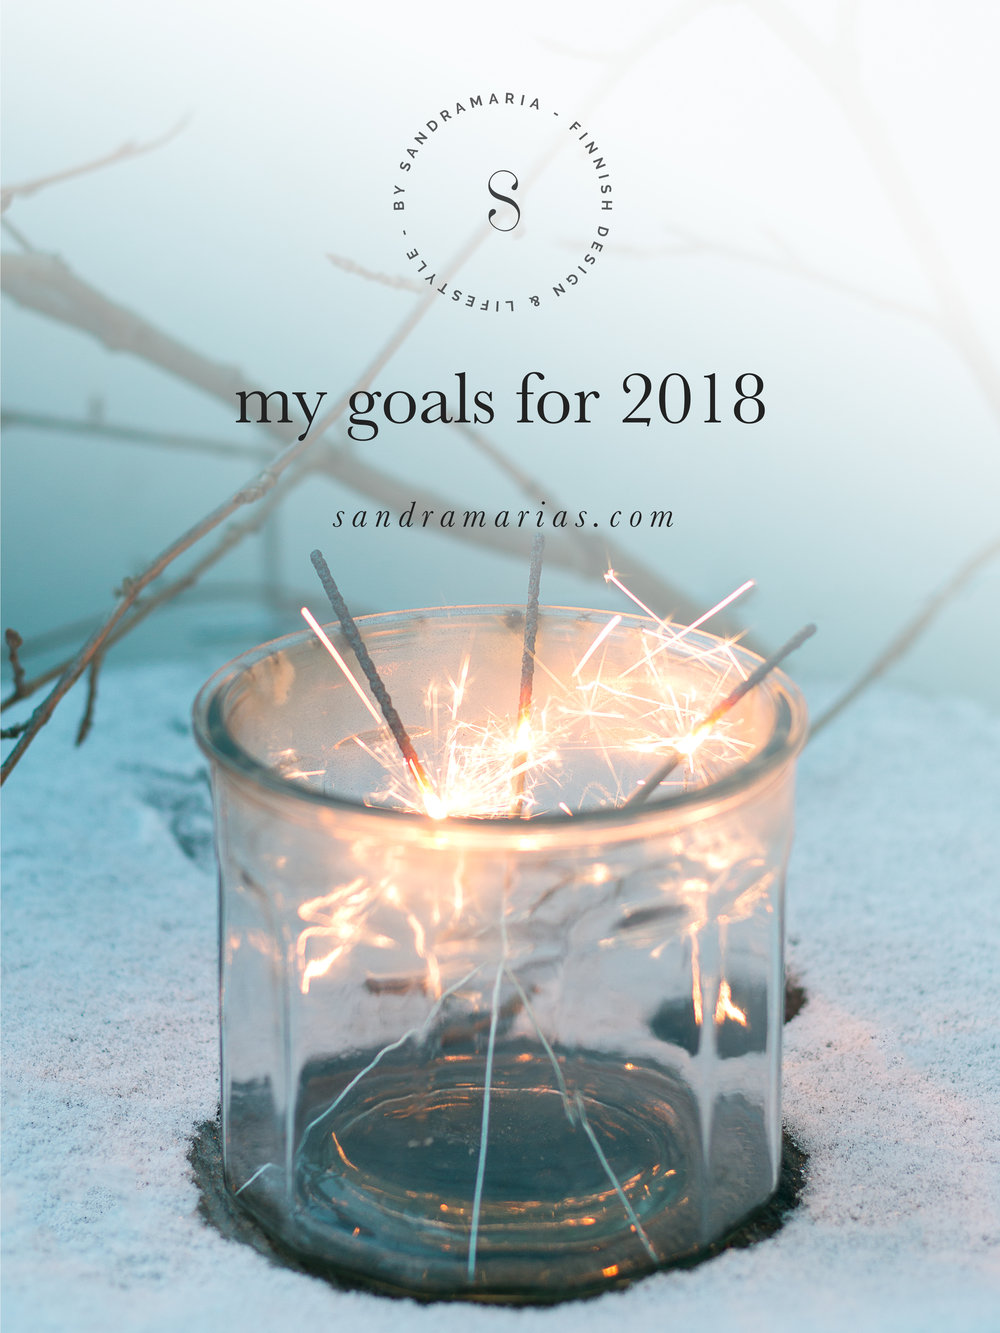 My goals for 2018 | Sandramarias.com | Happy New Year by Sandramaria